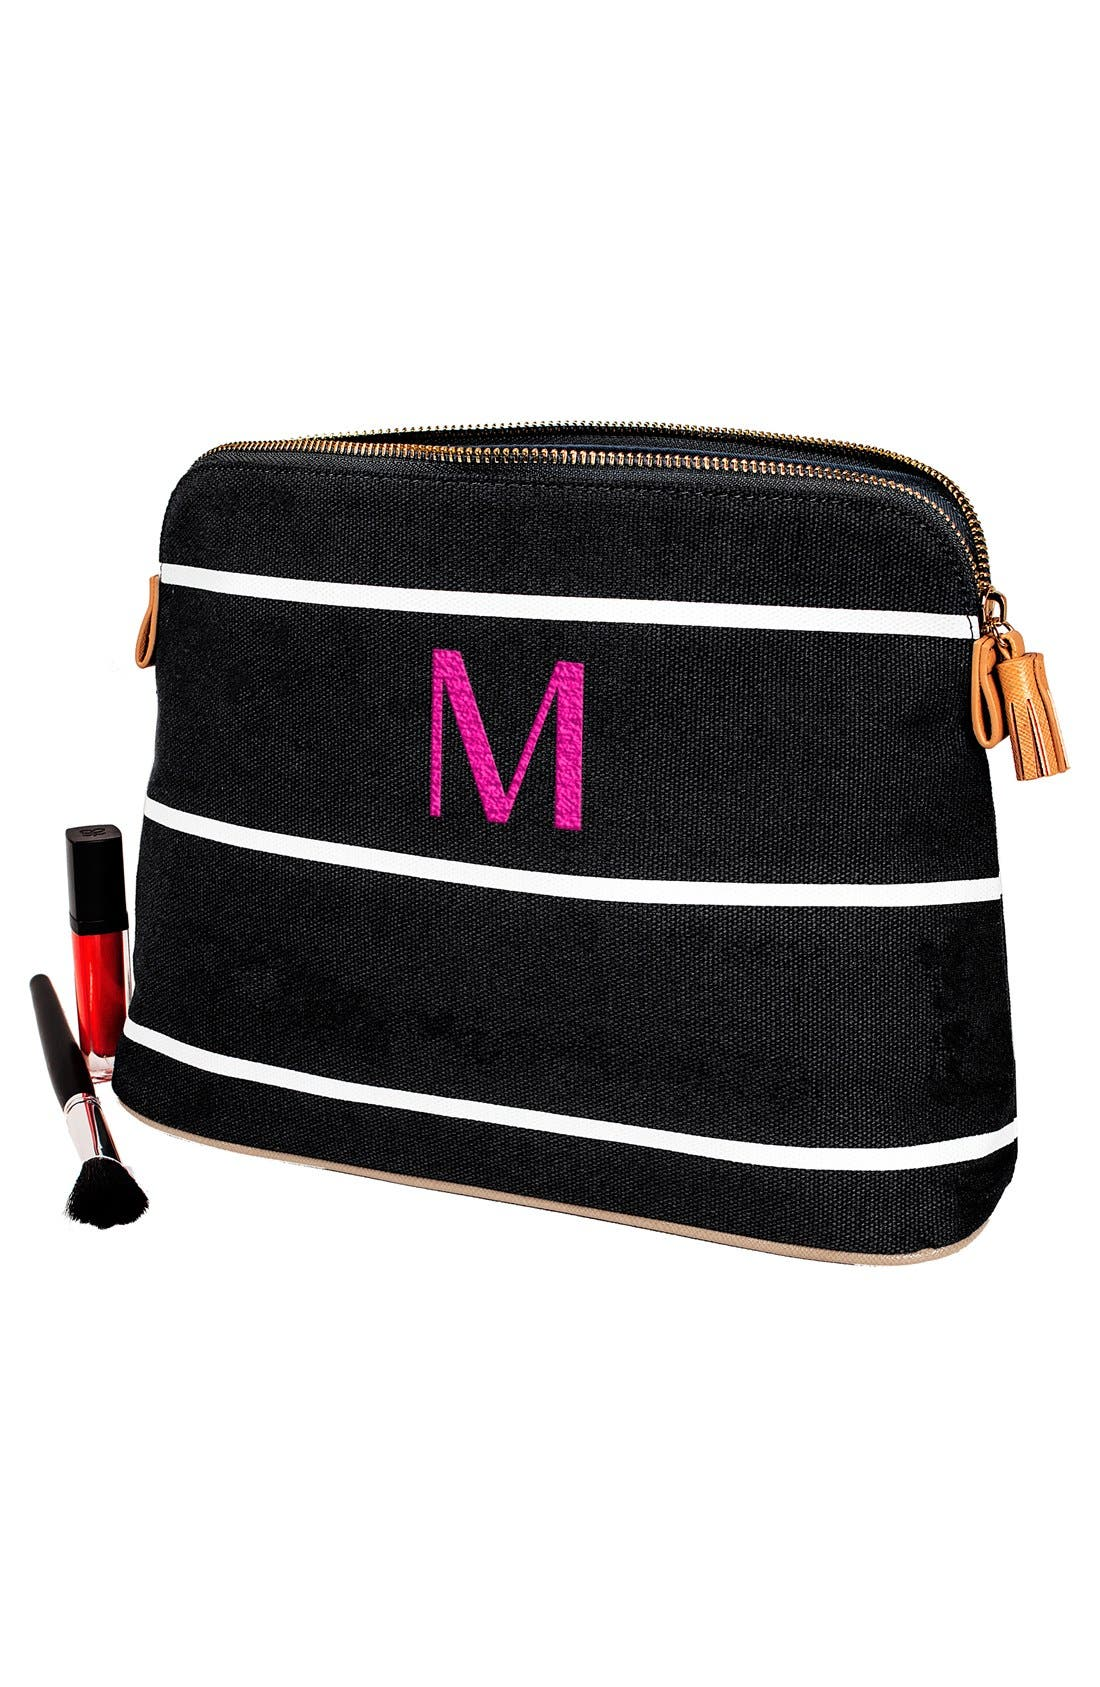 Monogram Cosmetics Bag,                             Alternate thumbnail 5, color,                             GREY H